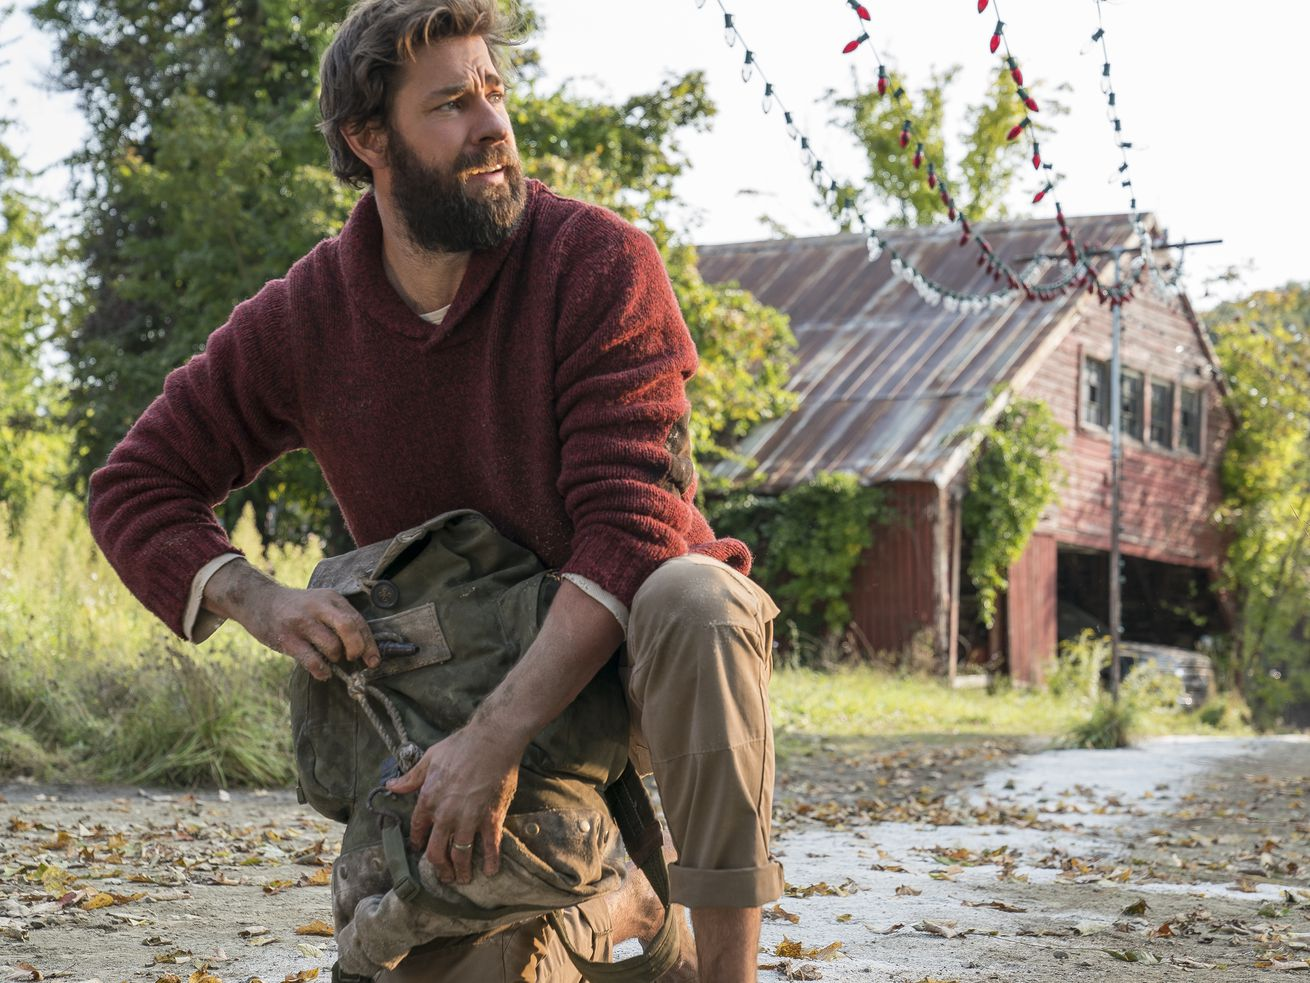 John Krasinski explains how he convinced his wife to do a dangerous scene in 'A Quiet Place II'